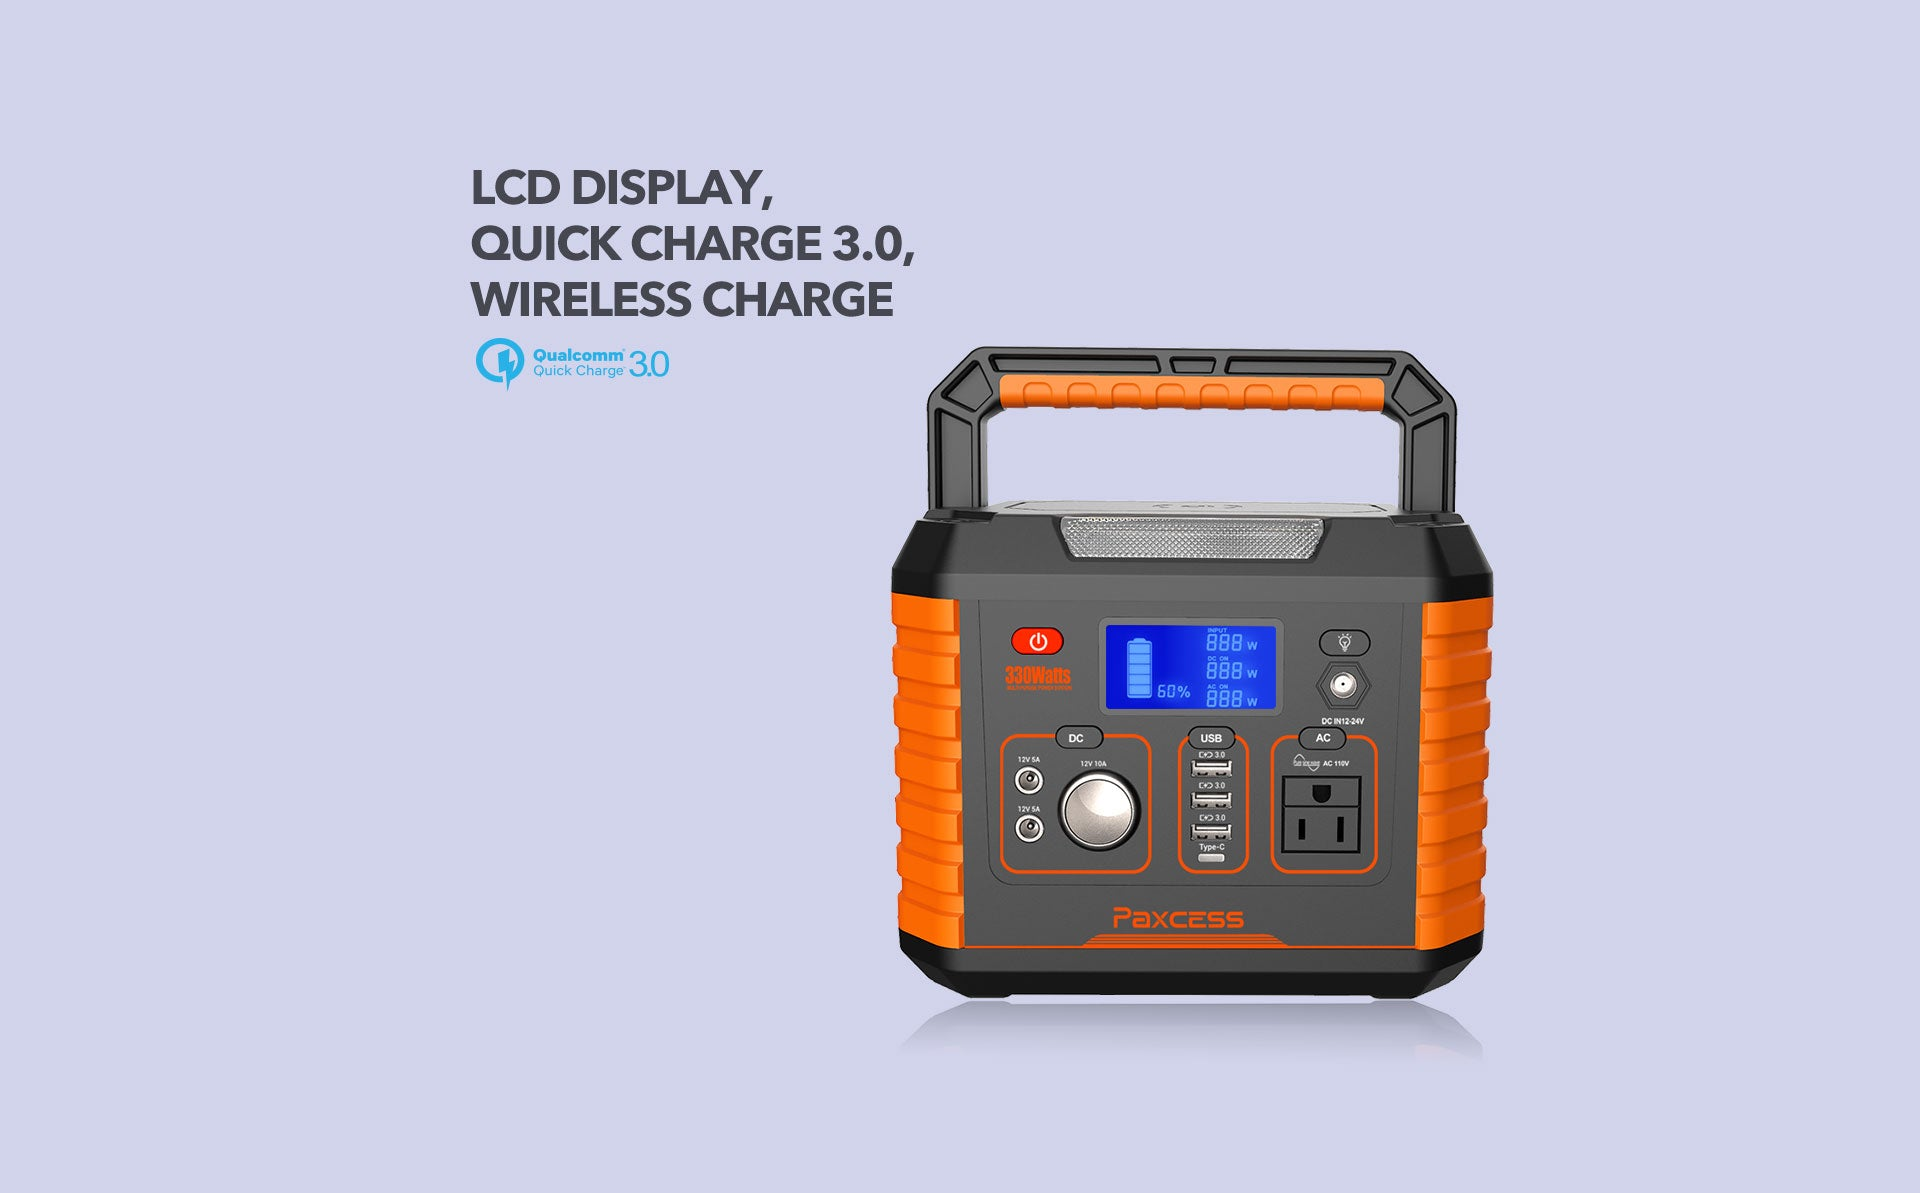 Paxcess 330W Portable Power Station with Quick Charge 3.0